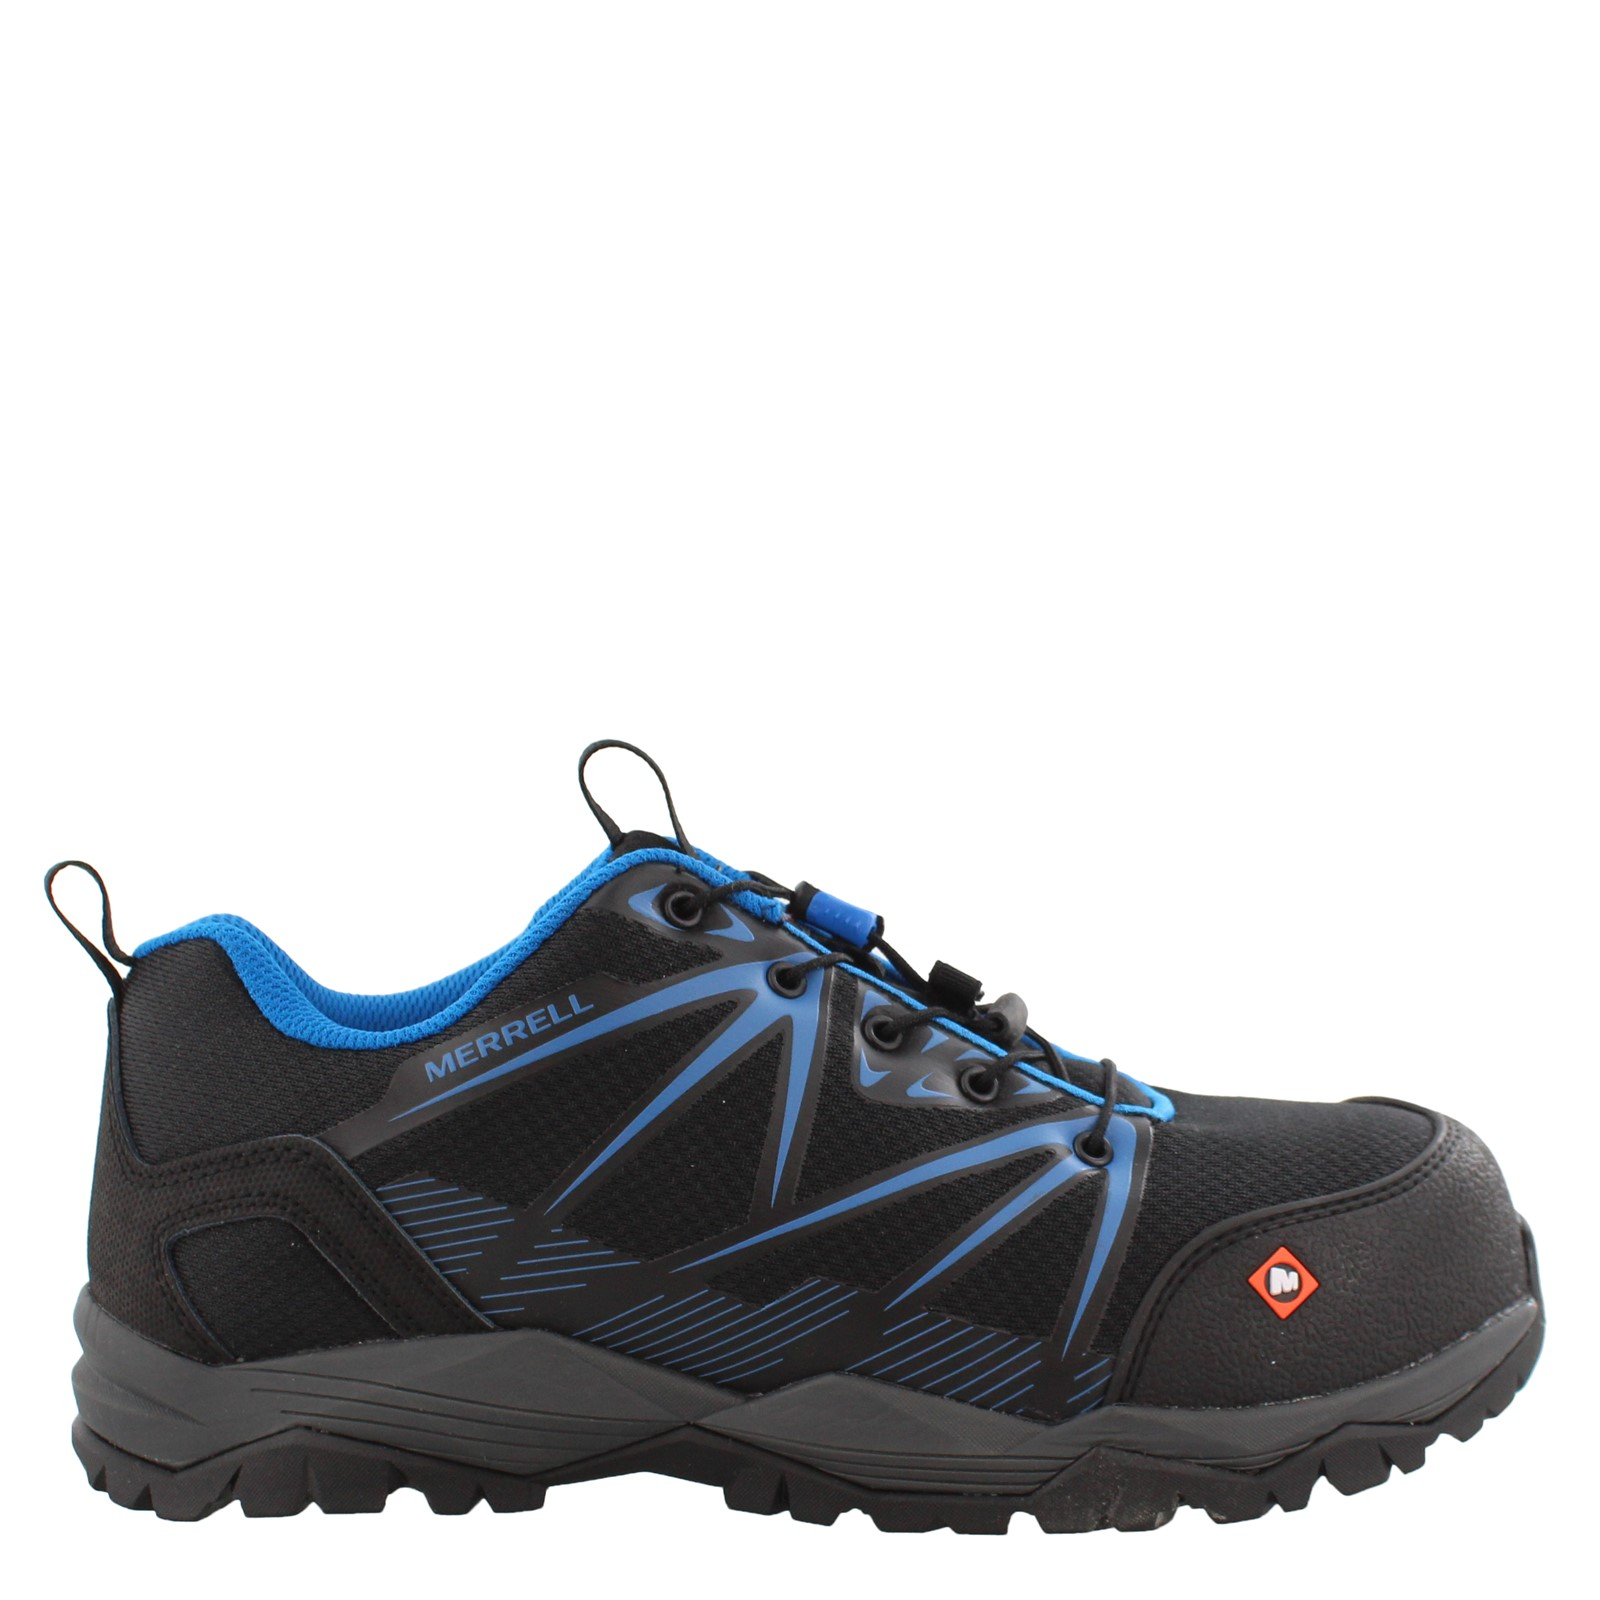 Men's Merrell, Fullbench Composite Toe Work Shoes